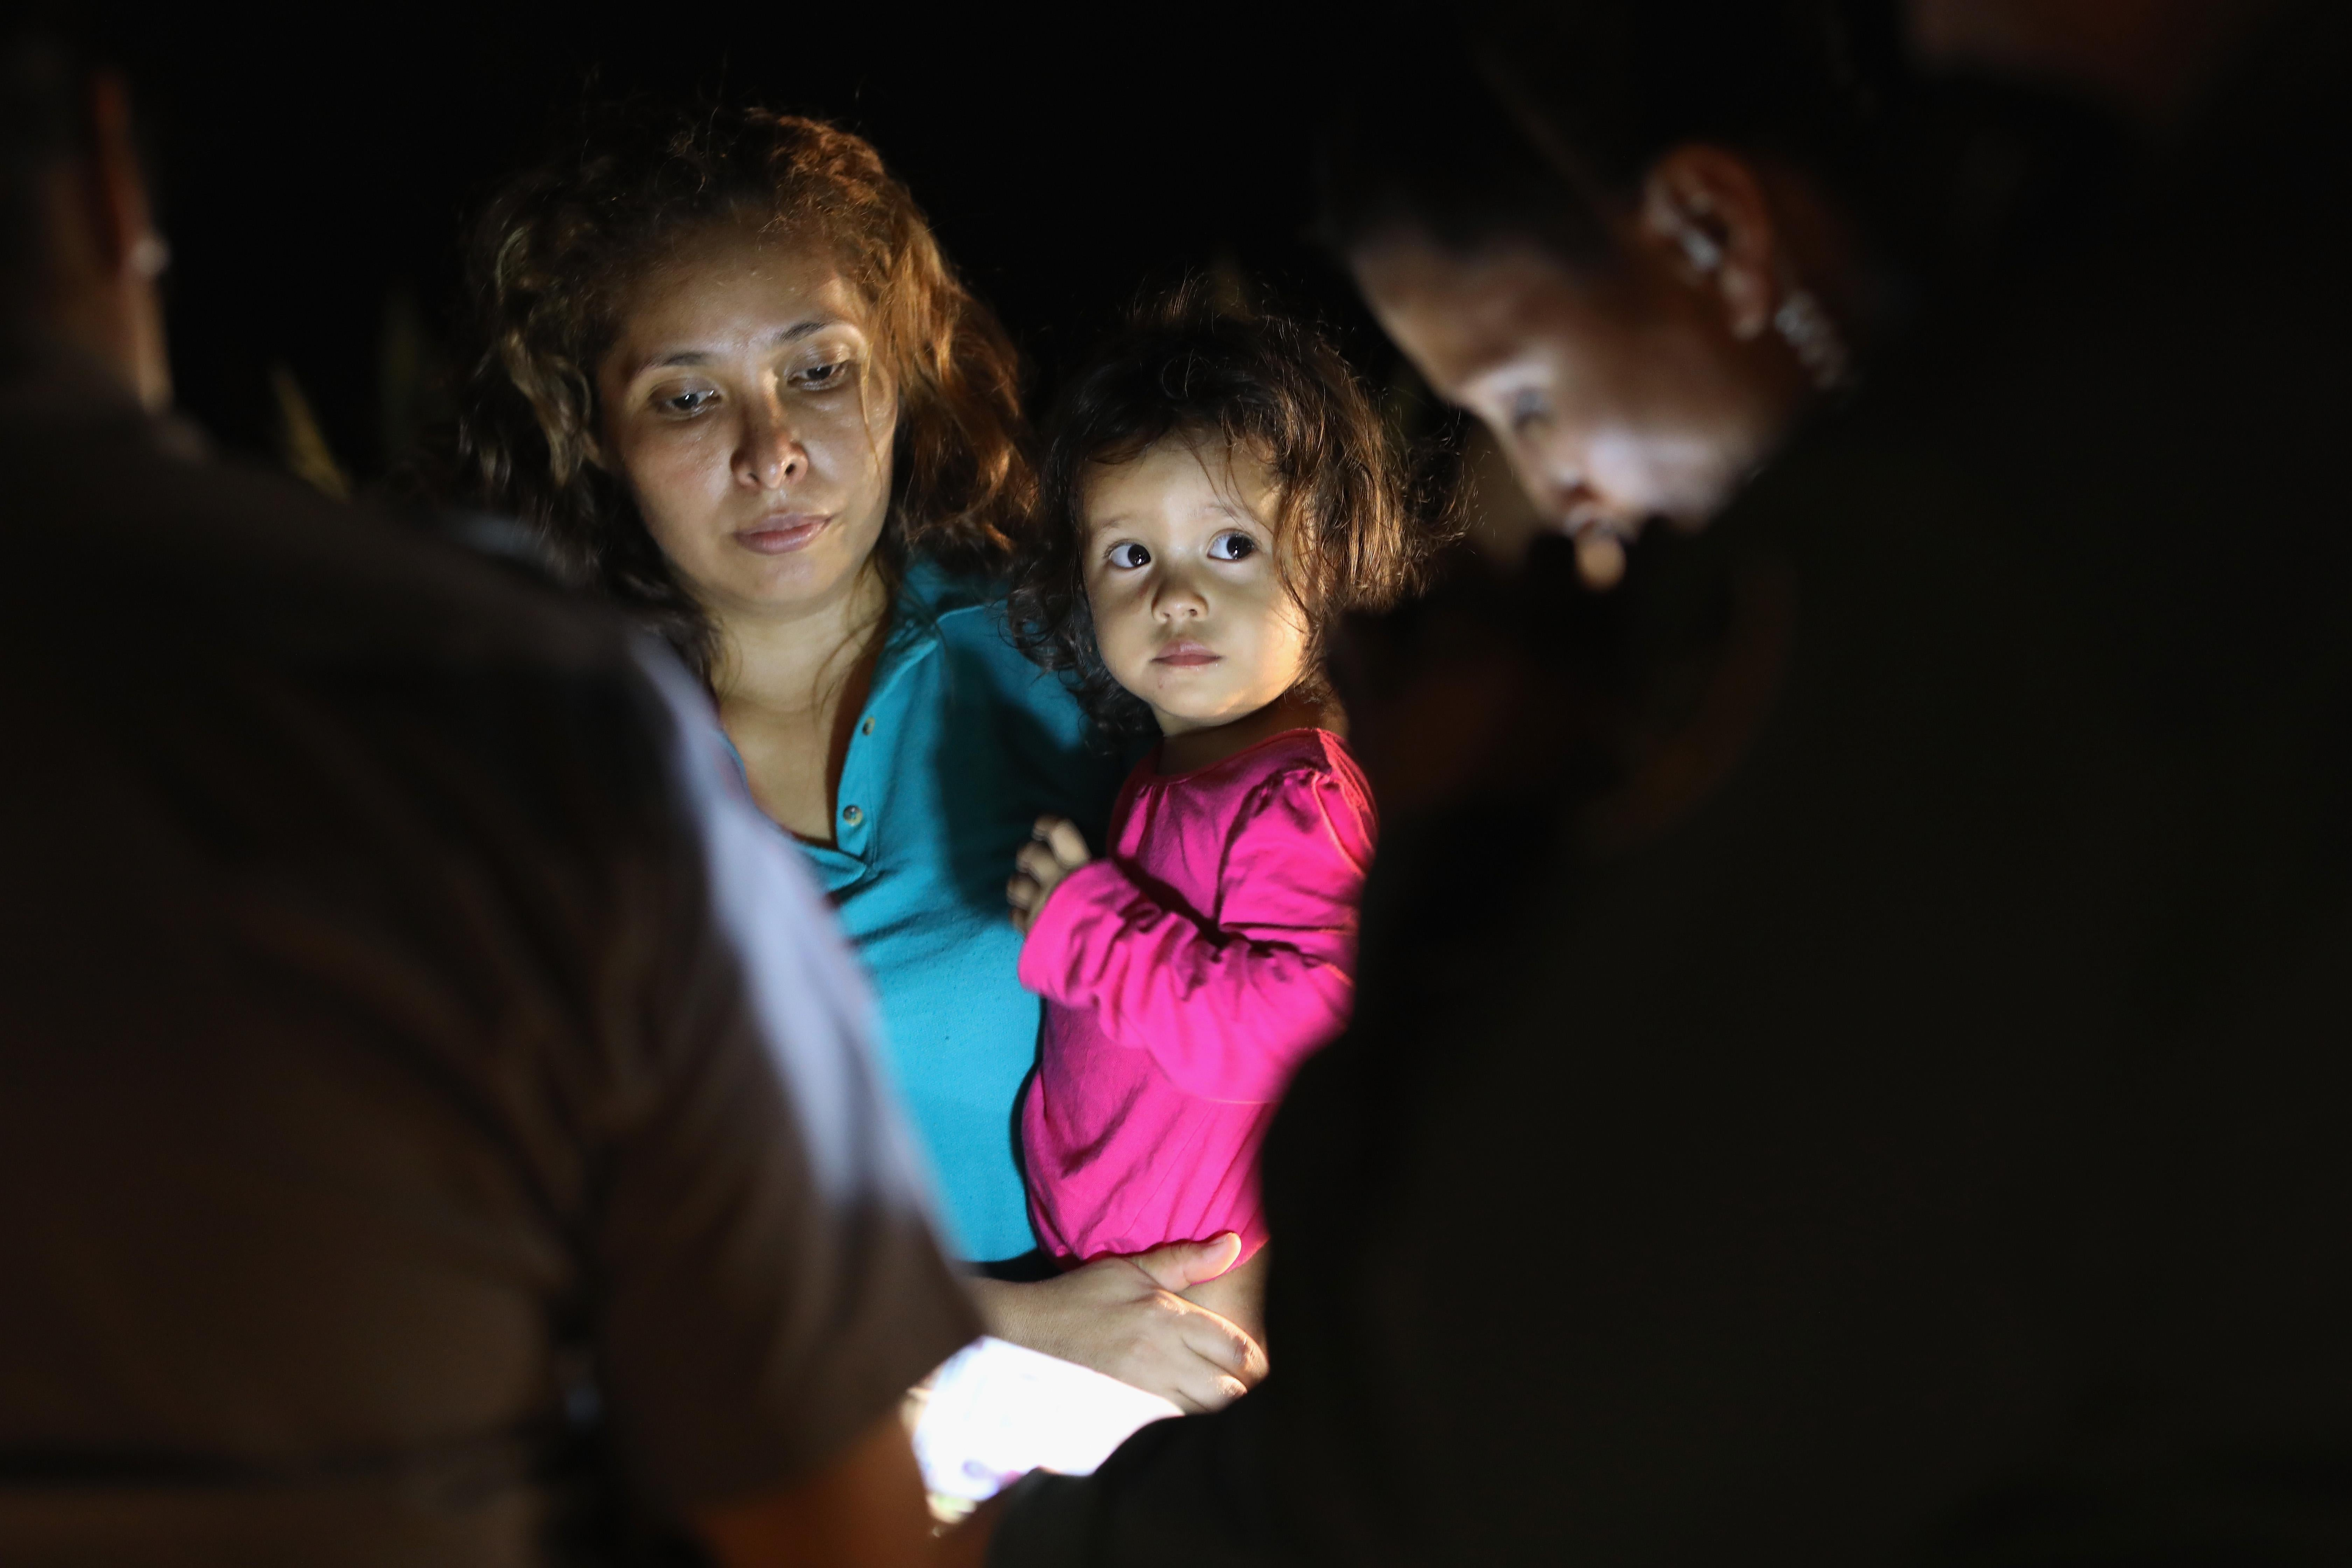 Central American asylum seekers, including a Honduran girl, 2, and her mother, are taken into custody near the U.S.-Mexico border on June 12, 2018 in McAllen, Texas.